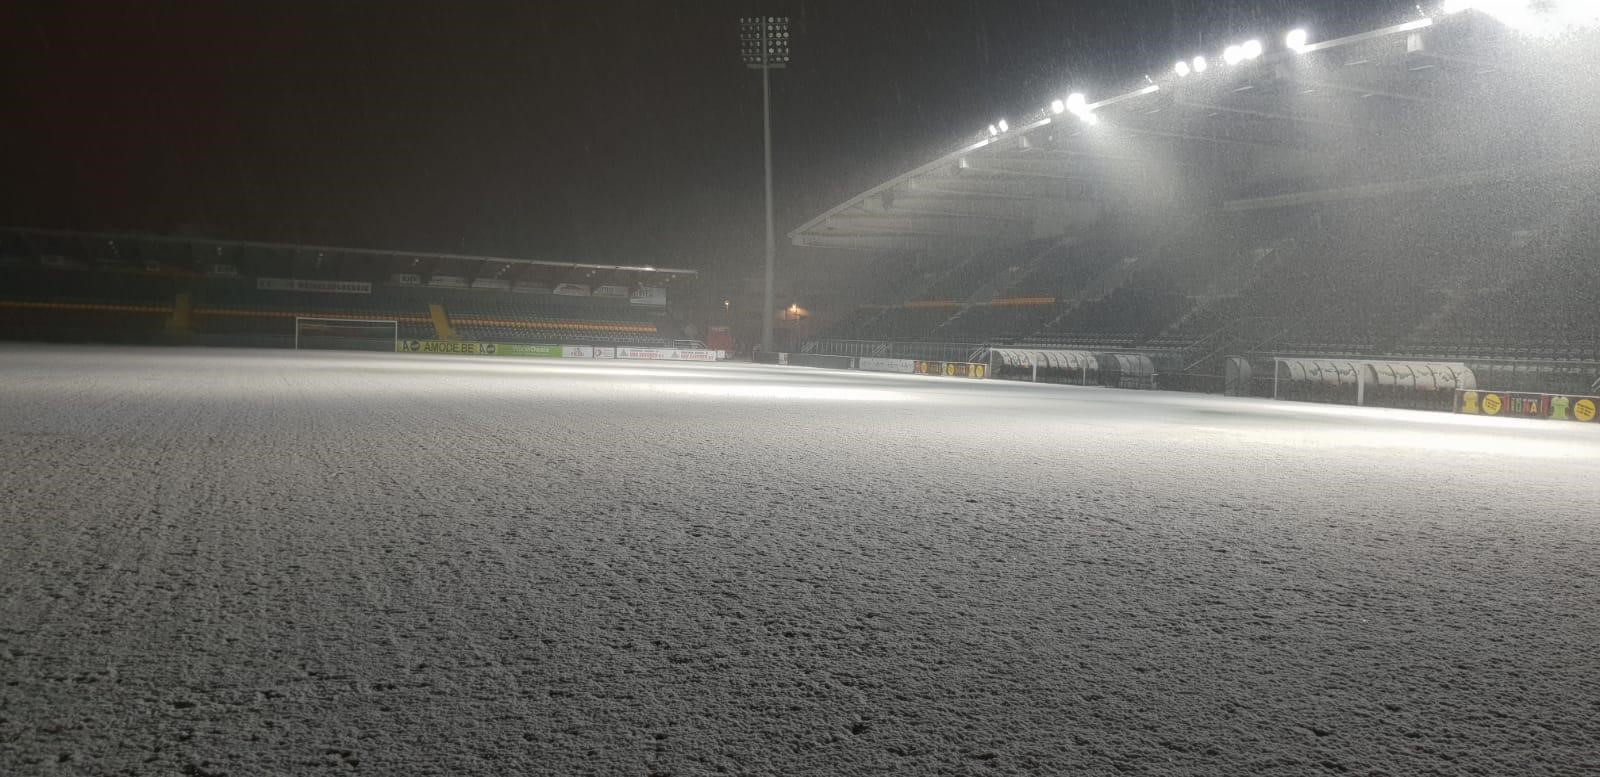 https://mgt.dewitte.be/upload/news/6181/20190130kvoostende-sneeuw.jpg